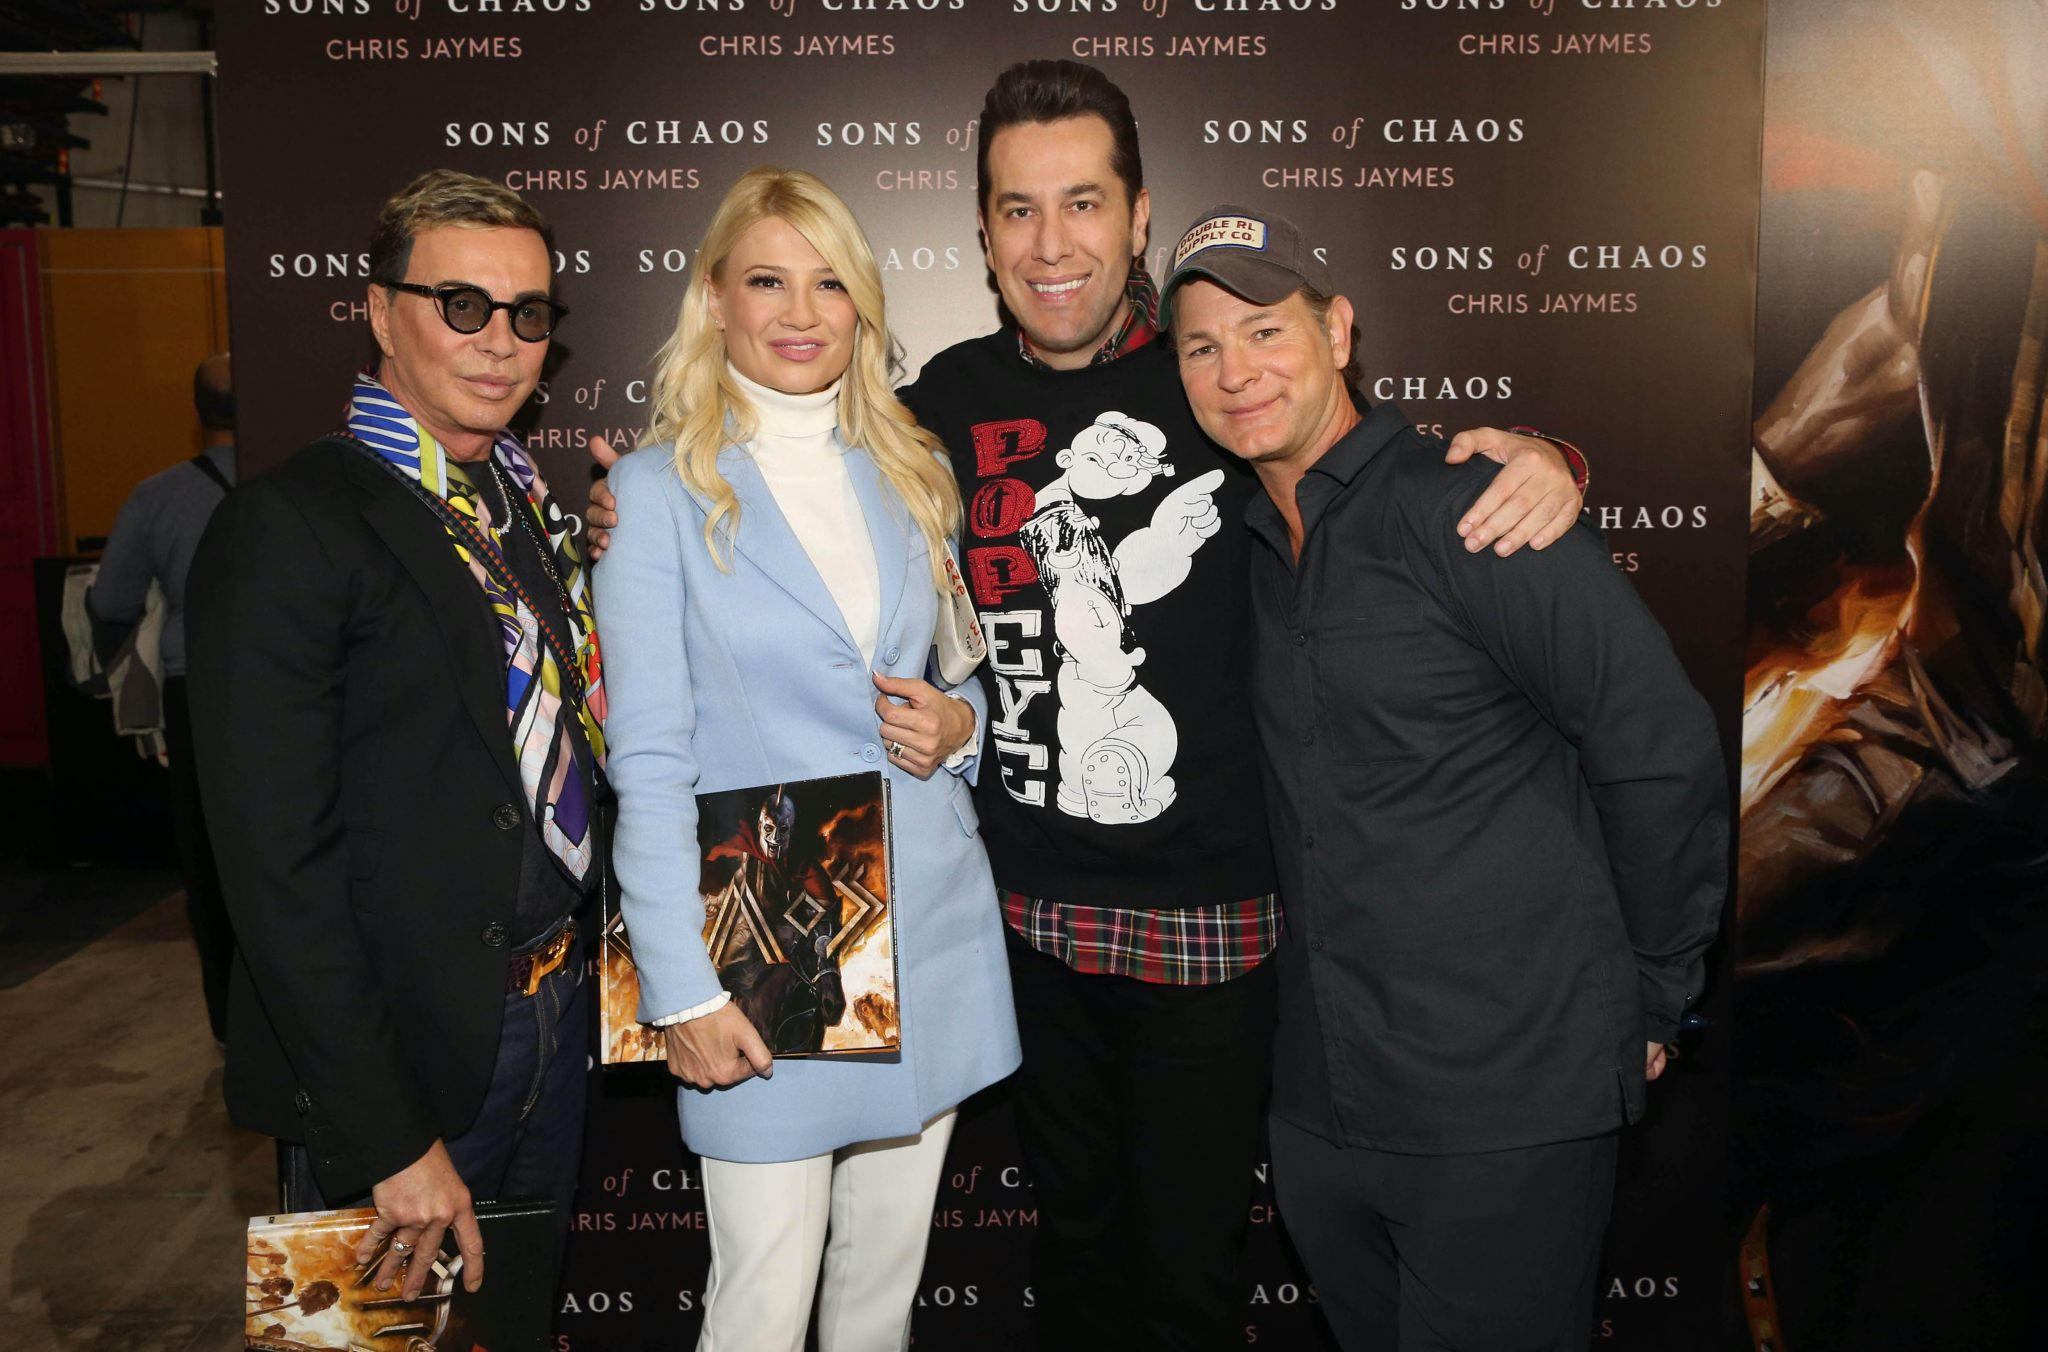 """Chris Jaymes: The famous American writer and screenwriter visits Greece to present his new graphic novel """"Sons Of Chaos"""", a fictional fantasy story about the Greek Revolution of 1821"""